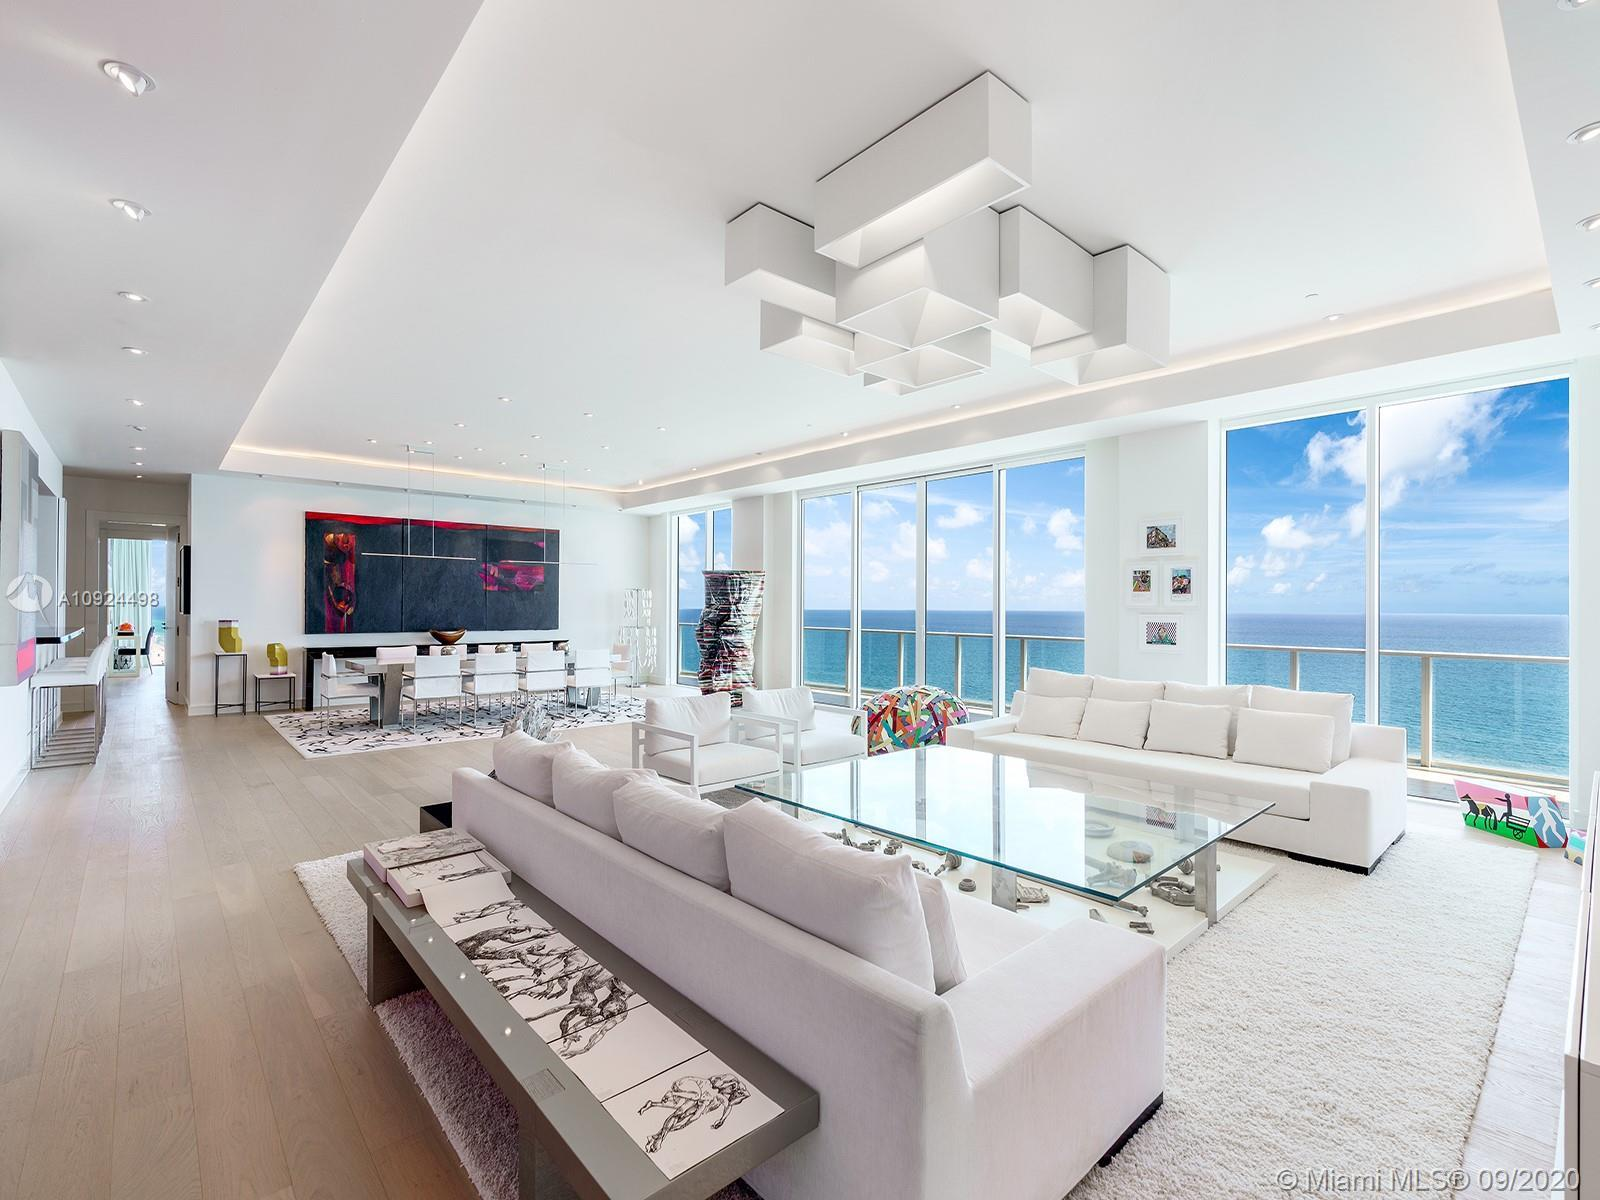 The penthouse at Apogee Beach was completely custom designed to be a luxurious home for entertaining